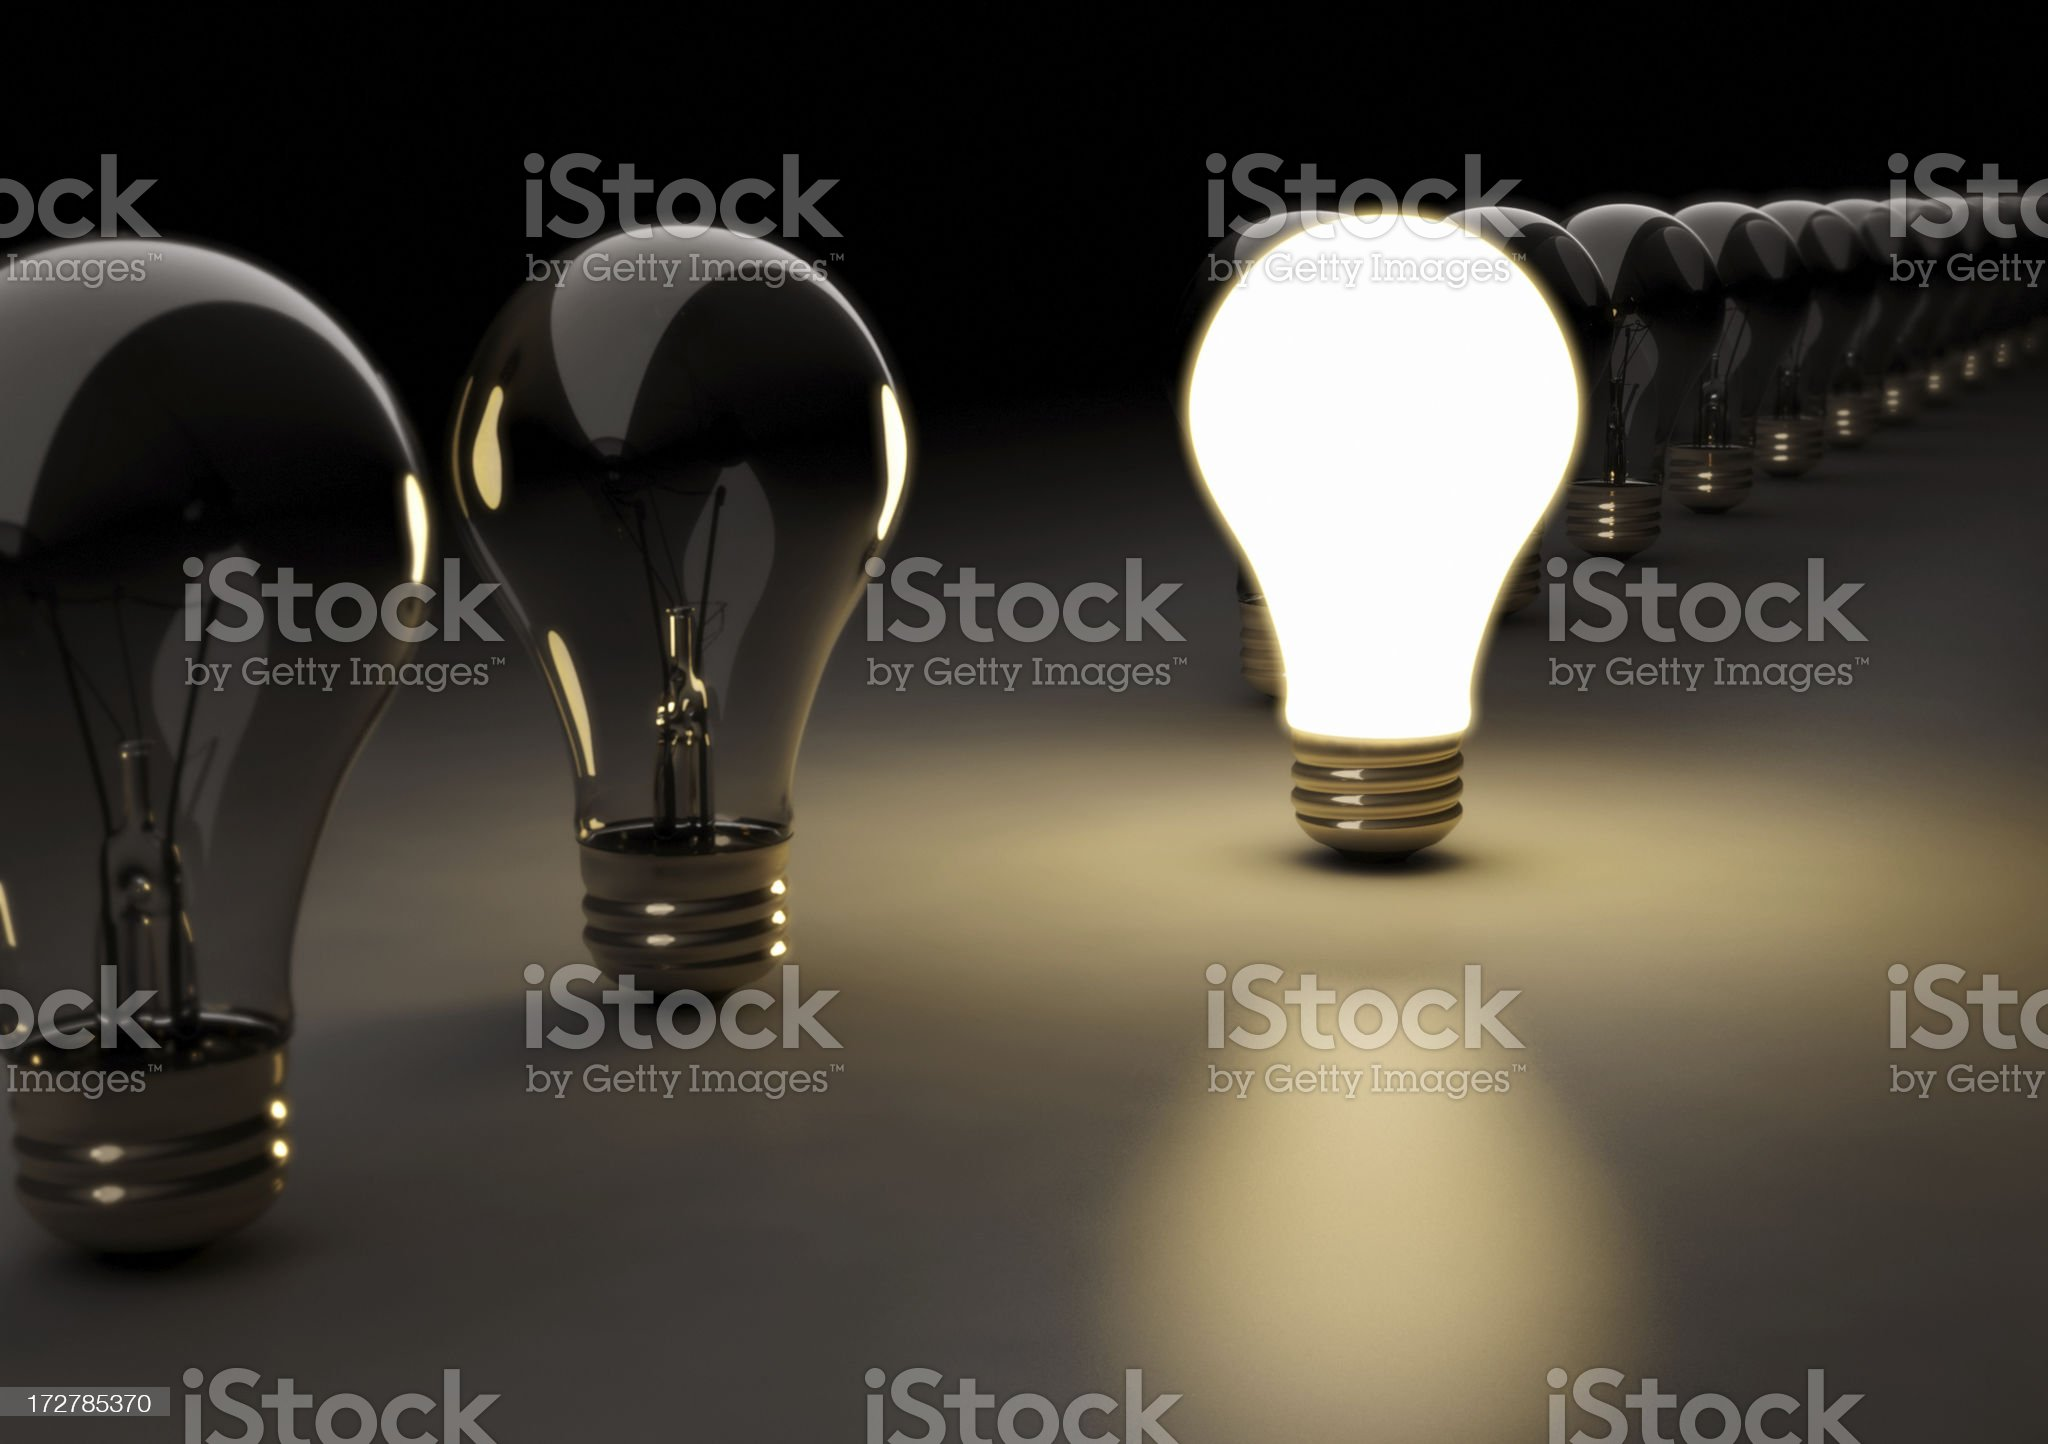 New Creativity Concept 1 royalty-free stock photo